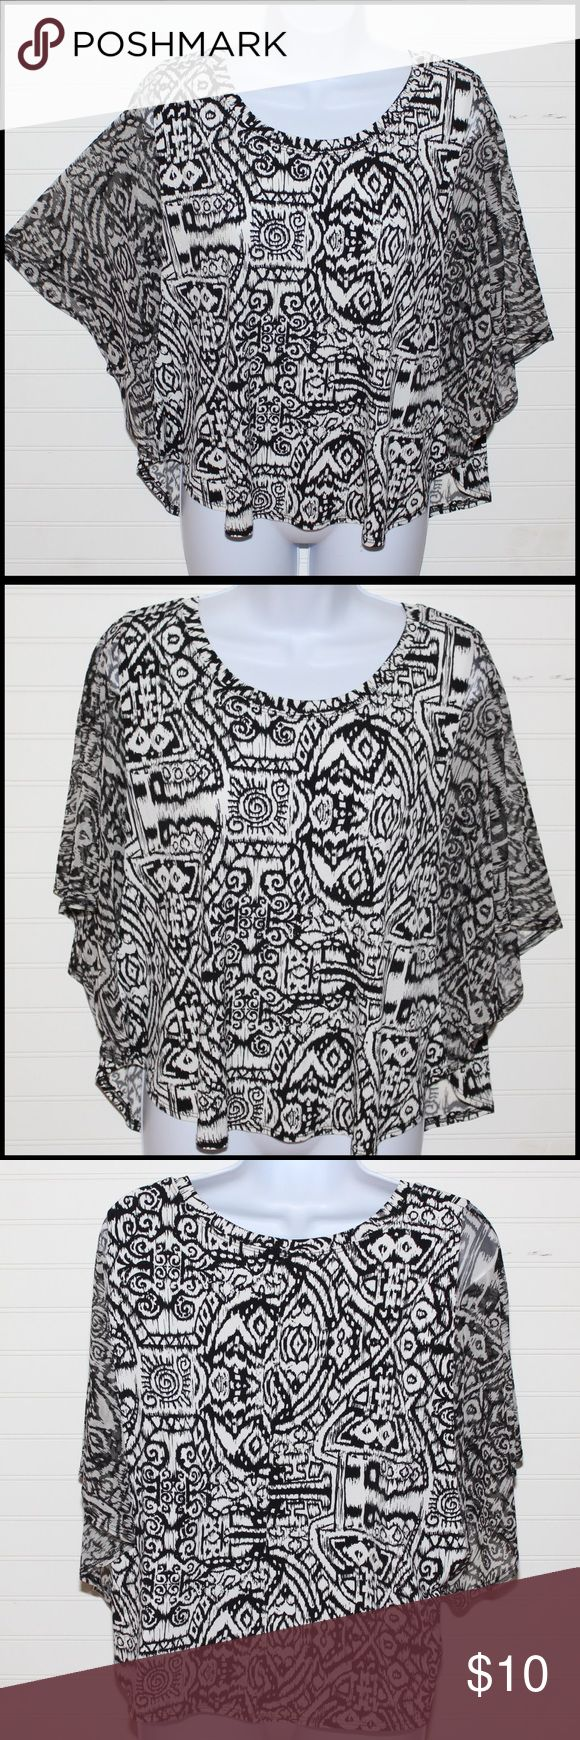 Black and white top with flared sleeves This top looks great on with batwing sleeves and a great print. Great with anything from shorts to jeans to skirts. Honestee Tops